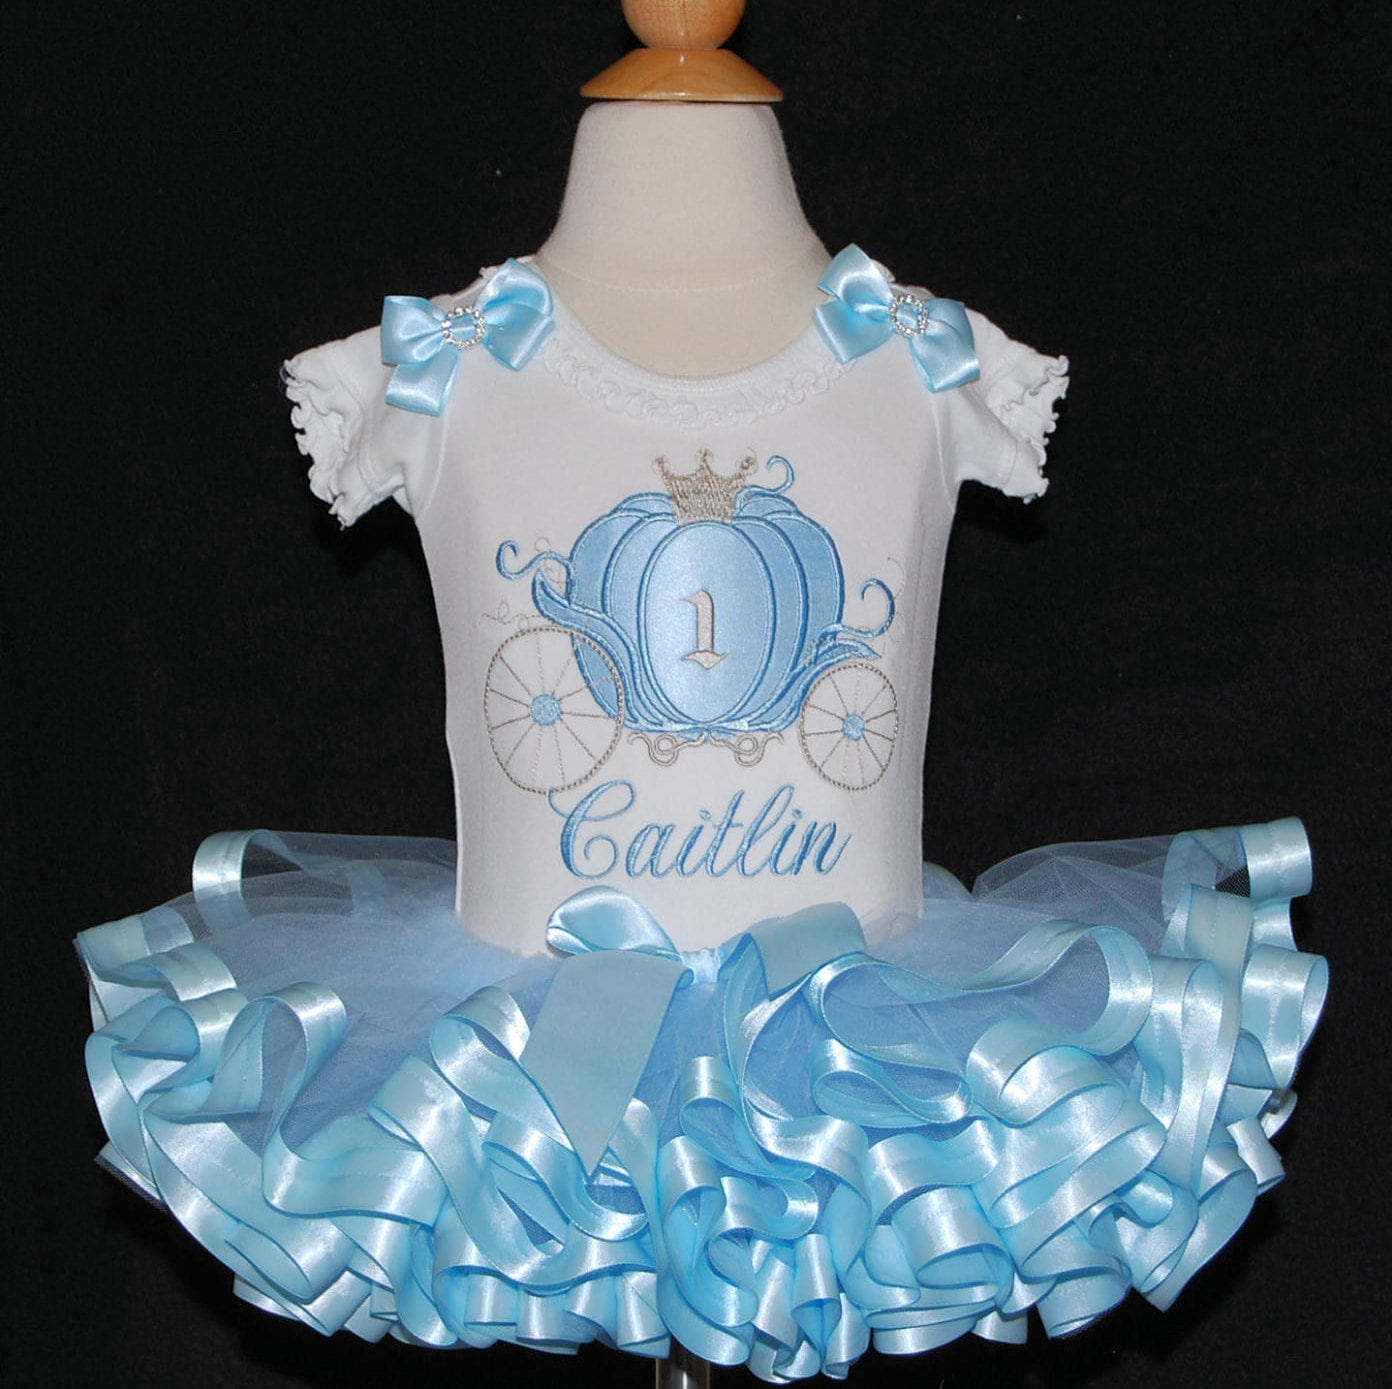 Princess 1st Birthday Tutu Outfit Blue and Silver ribbon trim tutu 1st birthday princess tutu dress Cinderella birthday tutu outfit baby 1st